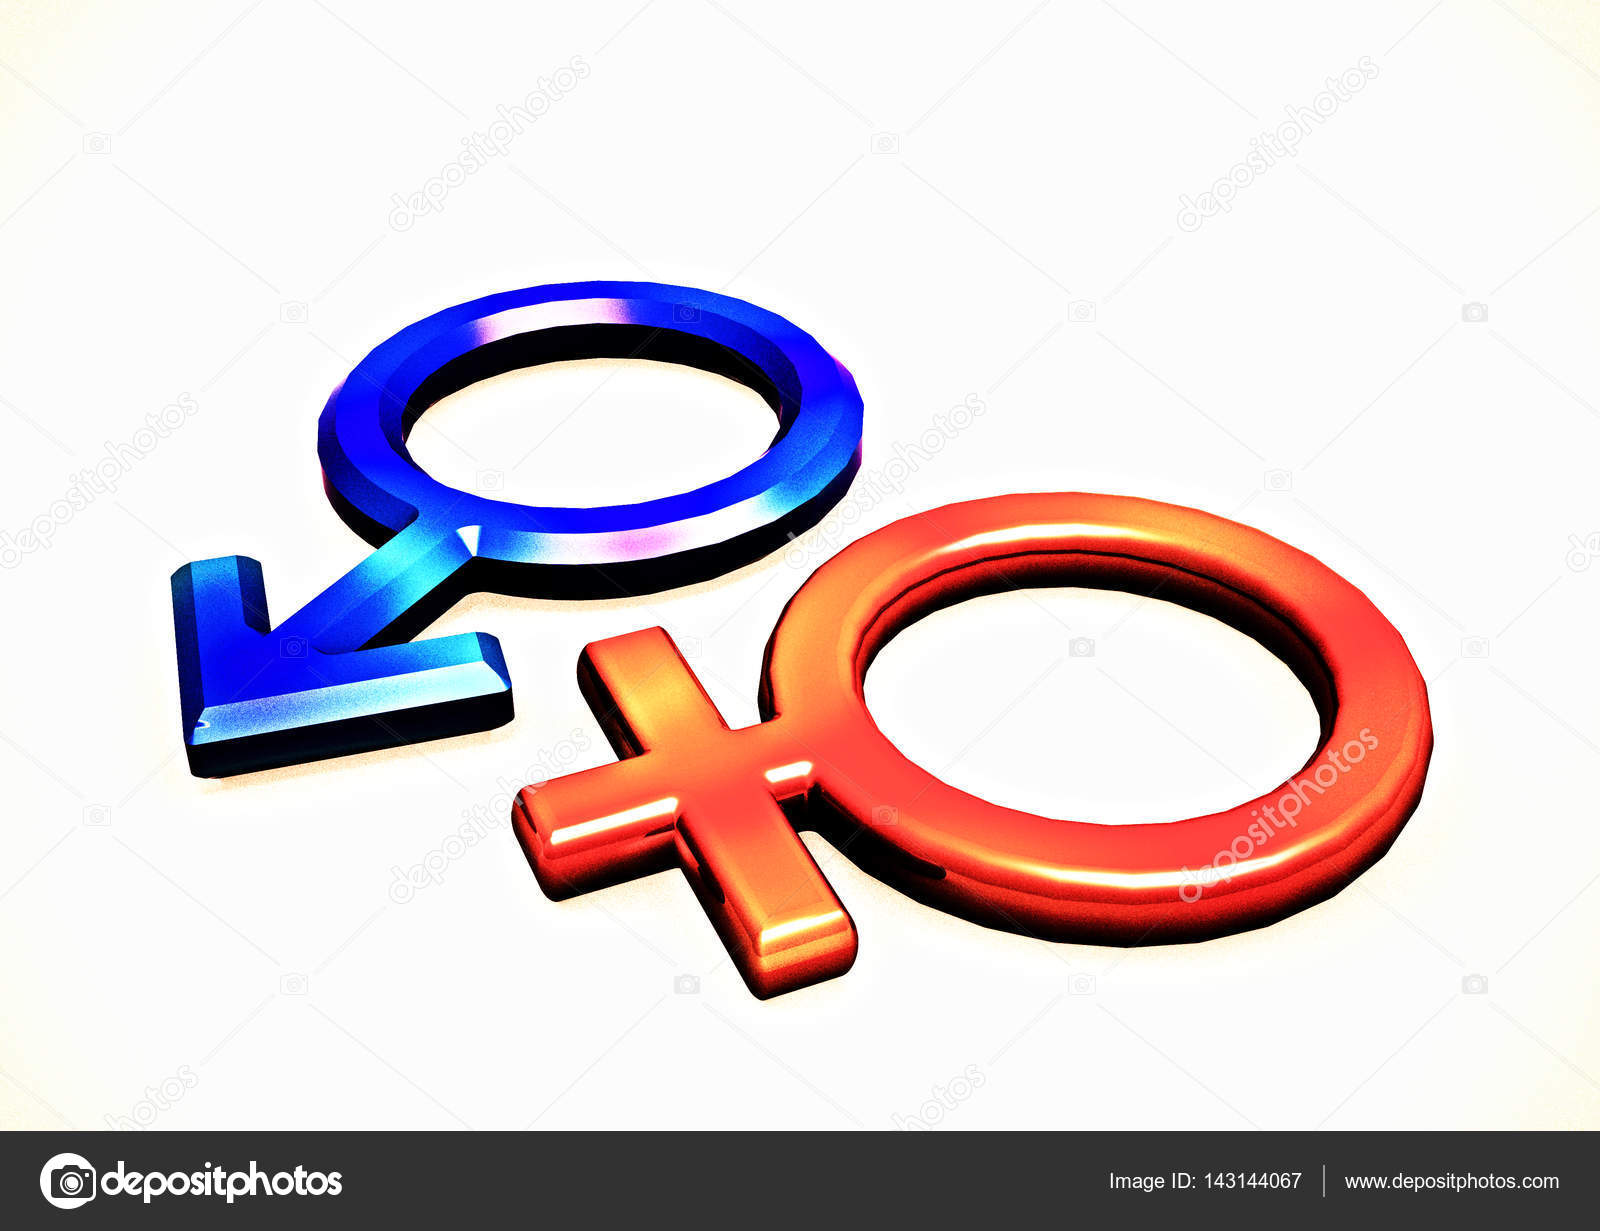 Mans and female symbols 3d render stock photo richter1910 dimensional mans and female signs on a white background 3d render photo by richter1910 buycottarizona